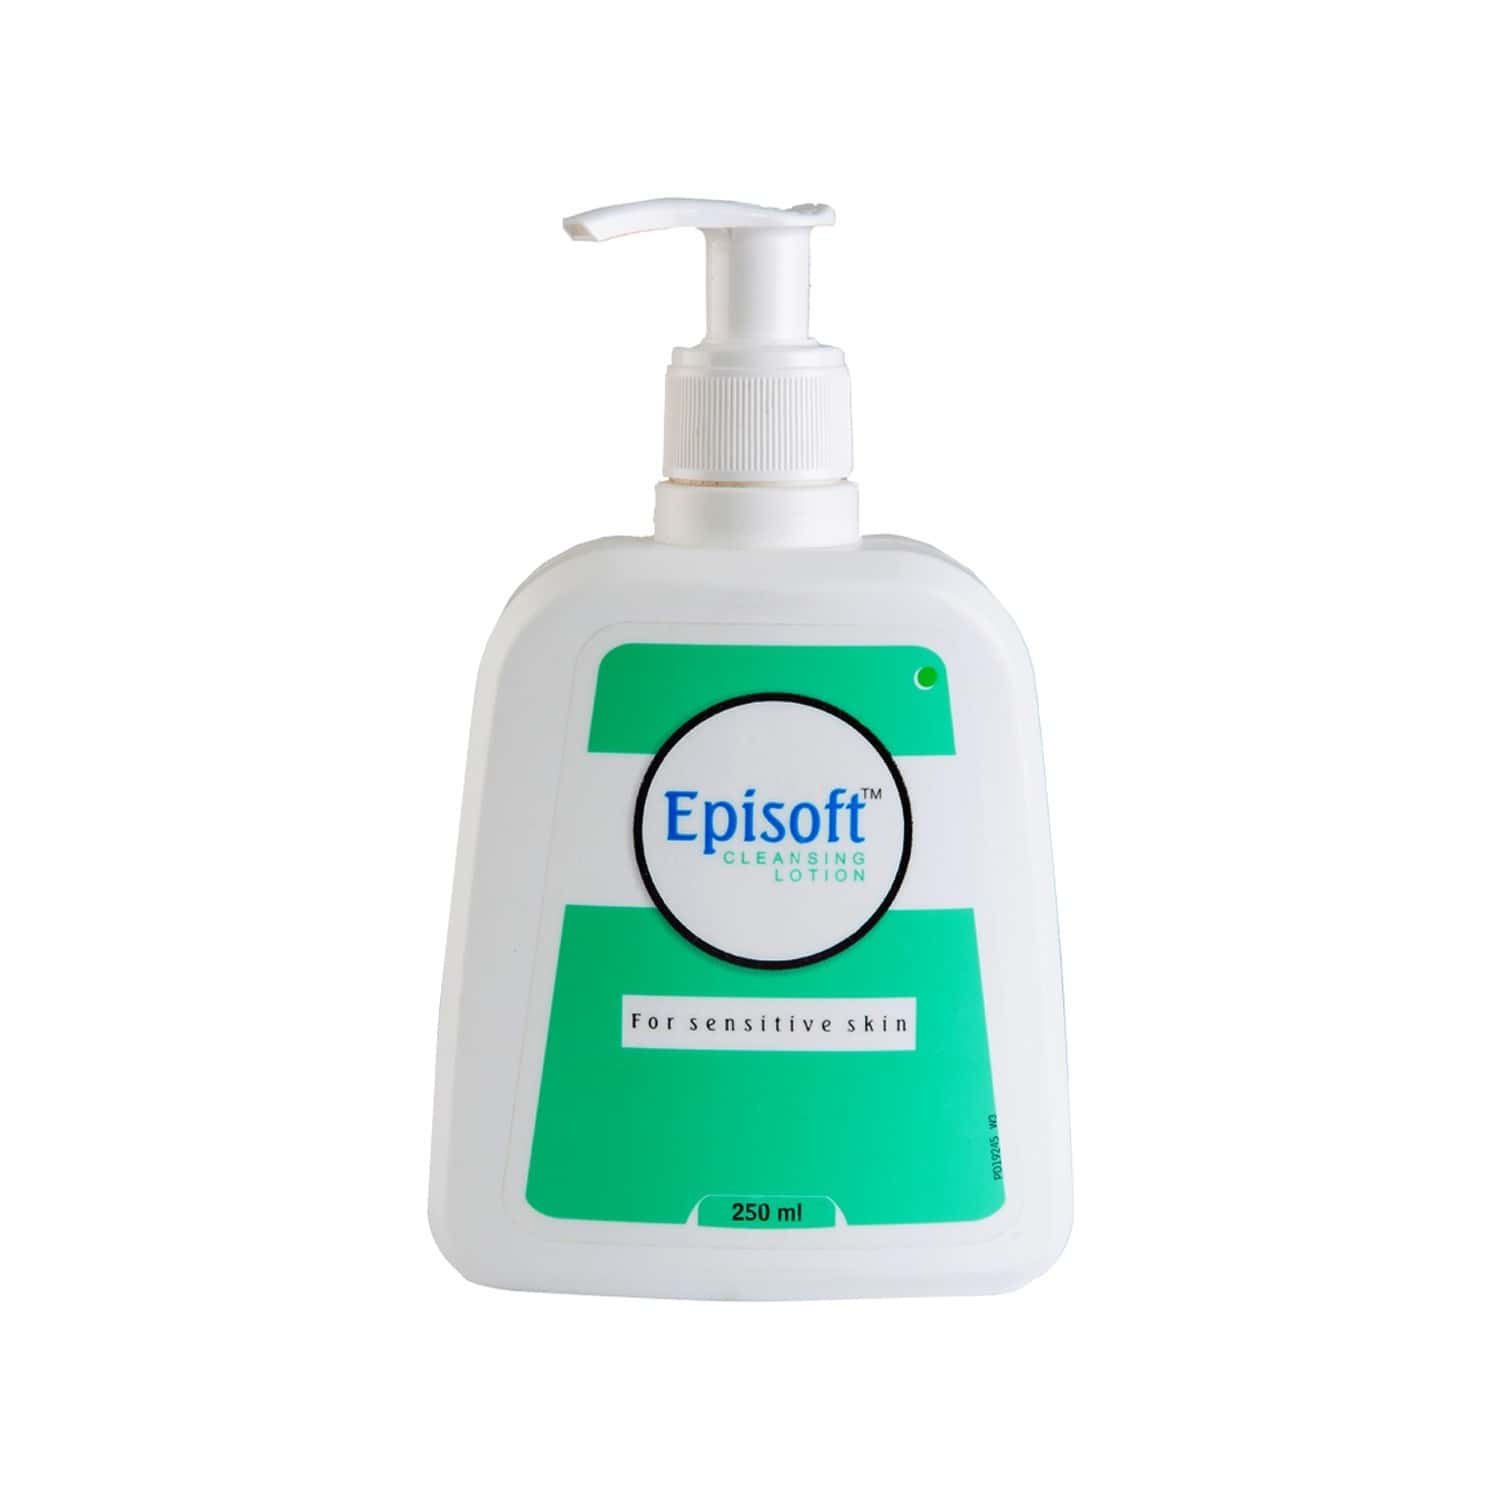 Episoftcleansing Lotion - 250ml